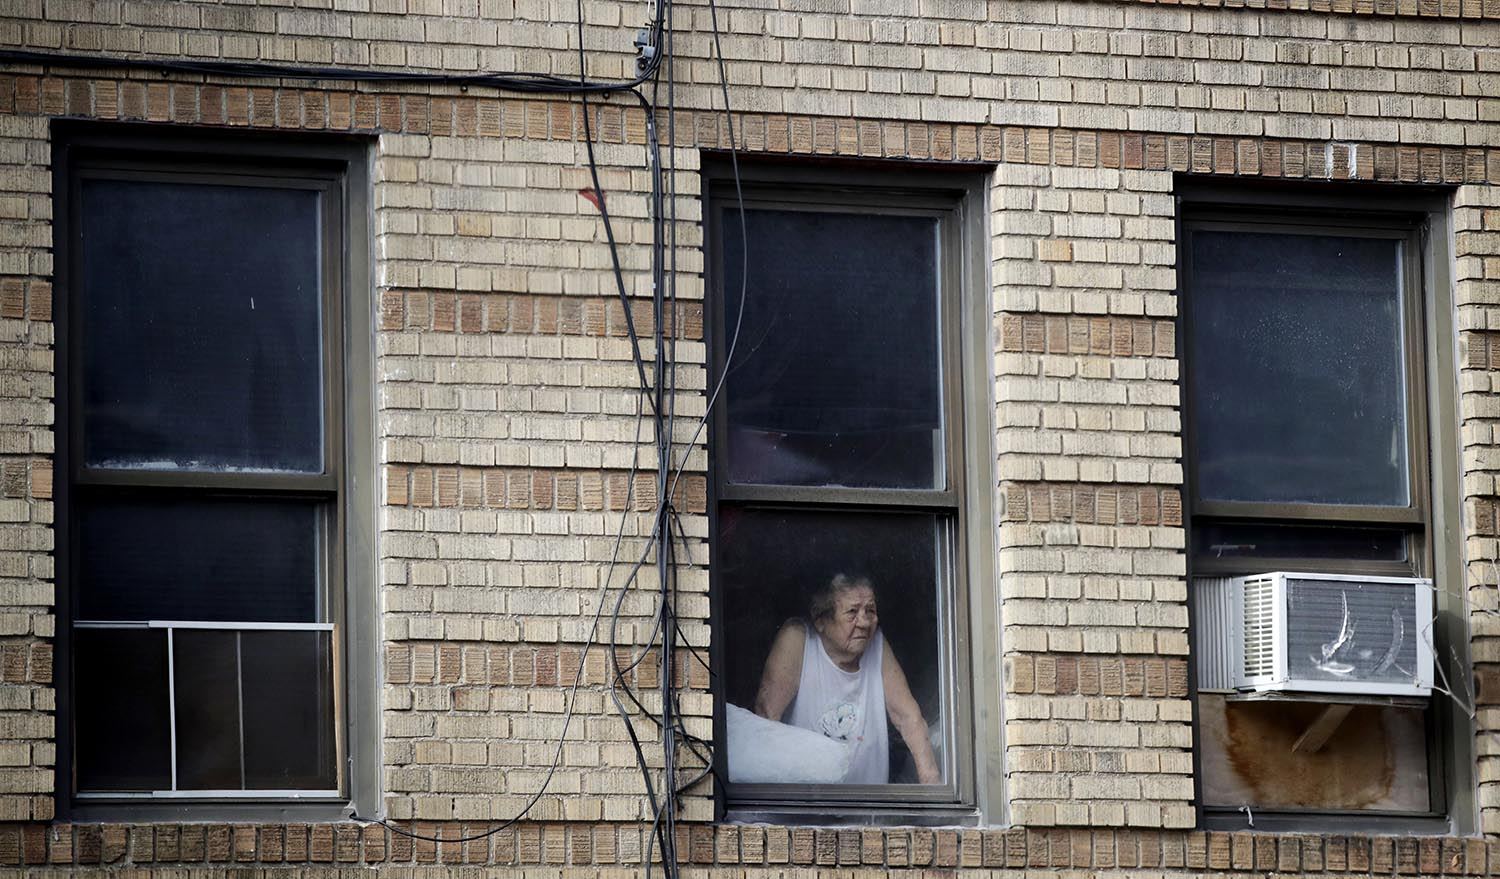 """<div class=""""meta image-caption""""><div class=""""origin-logo origin-image ap""""><span>AP</span></div><span class=""""caption-text"""">A woman looks out the window of a building adjacent to an apartment building where more than 10 people died in fire a day earlier in the Bronx. (AP Photo/Julio Cortez)</span></div>"""